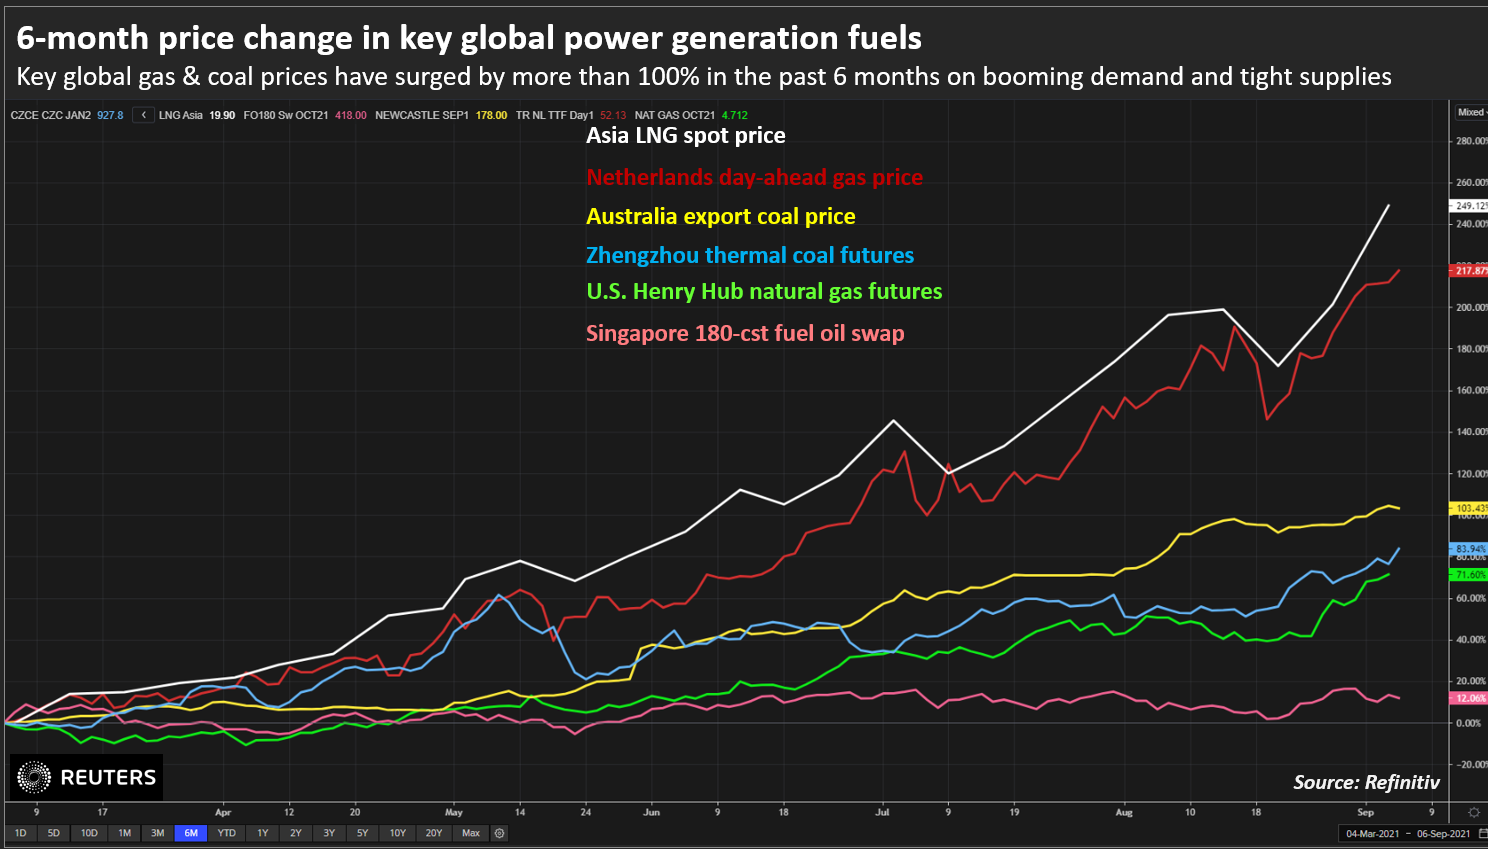 Key global gas & coal prices have surged by more than 100% in the past 6 months on booming demand and tight supplies